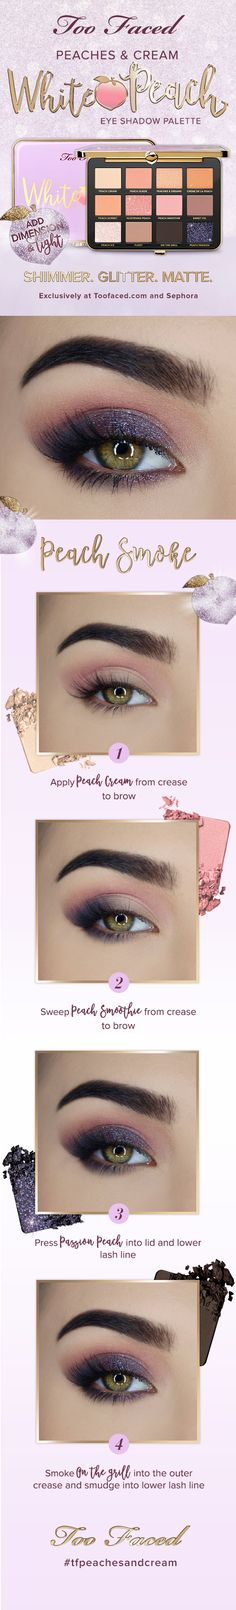 Too Faced  Peaches & Cream White Peach Eyeshadow Palette Make-up Tutorial! :-)